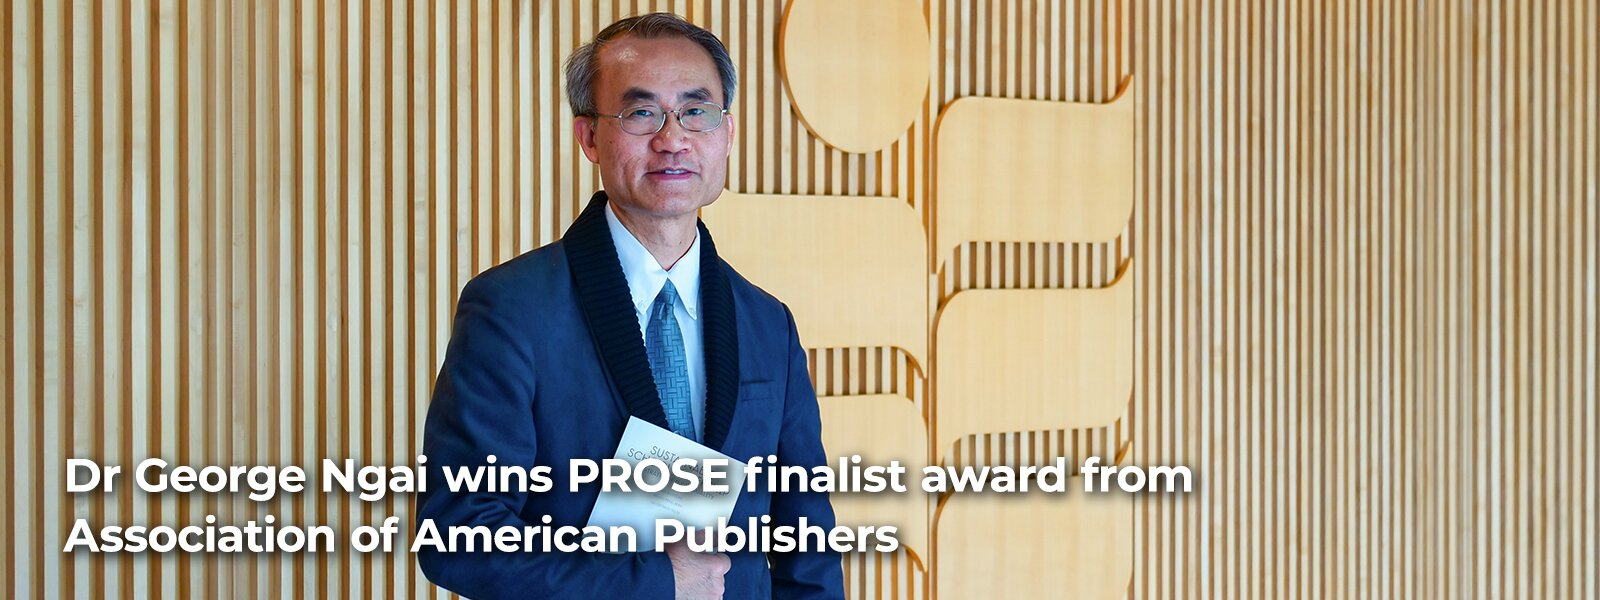 Dr George Ngai wins PROSE finalist award from Association of American Publishers